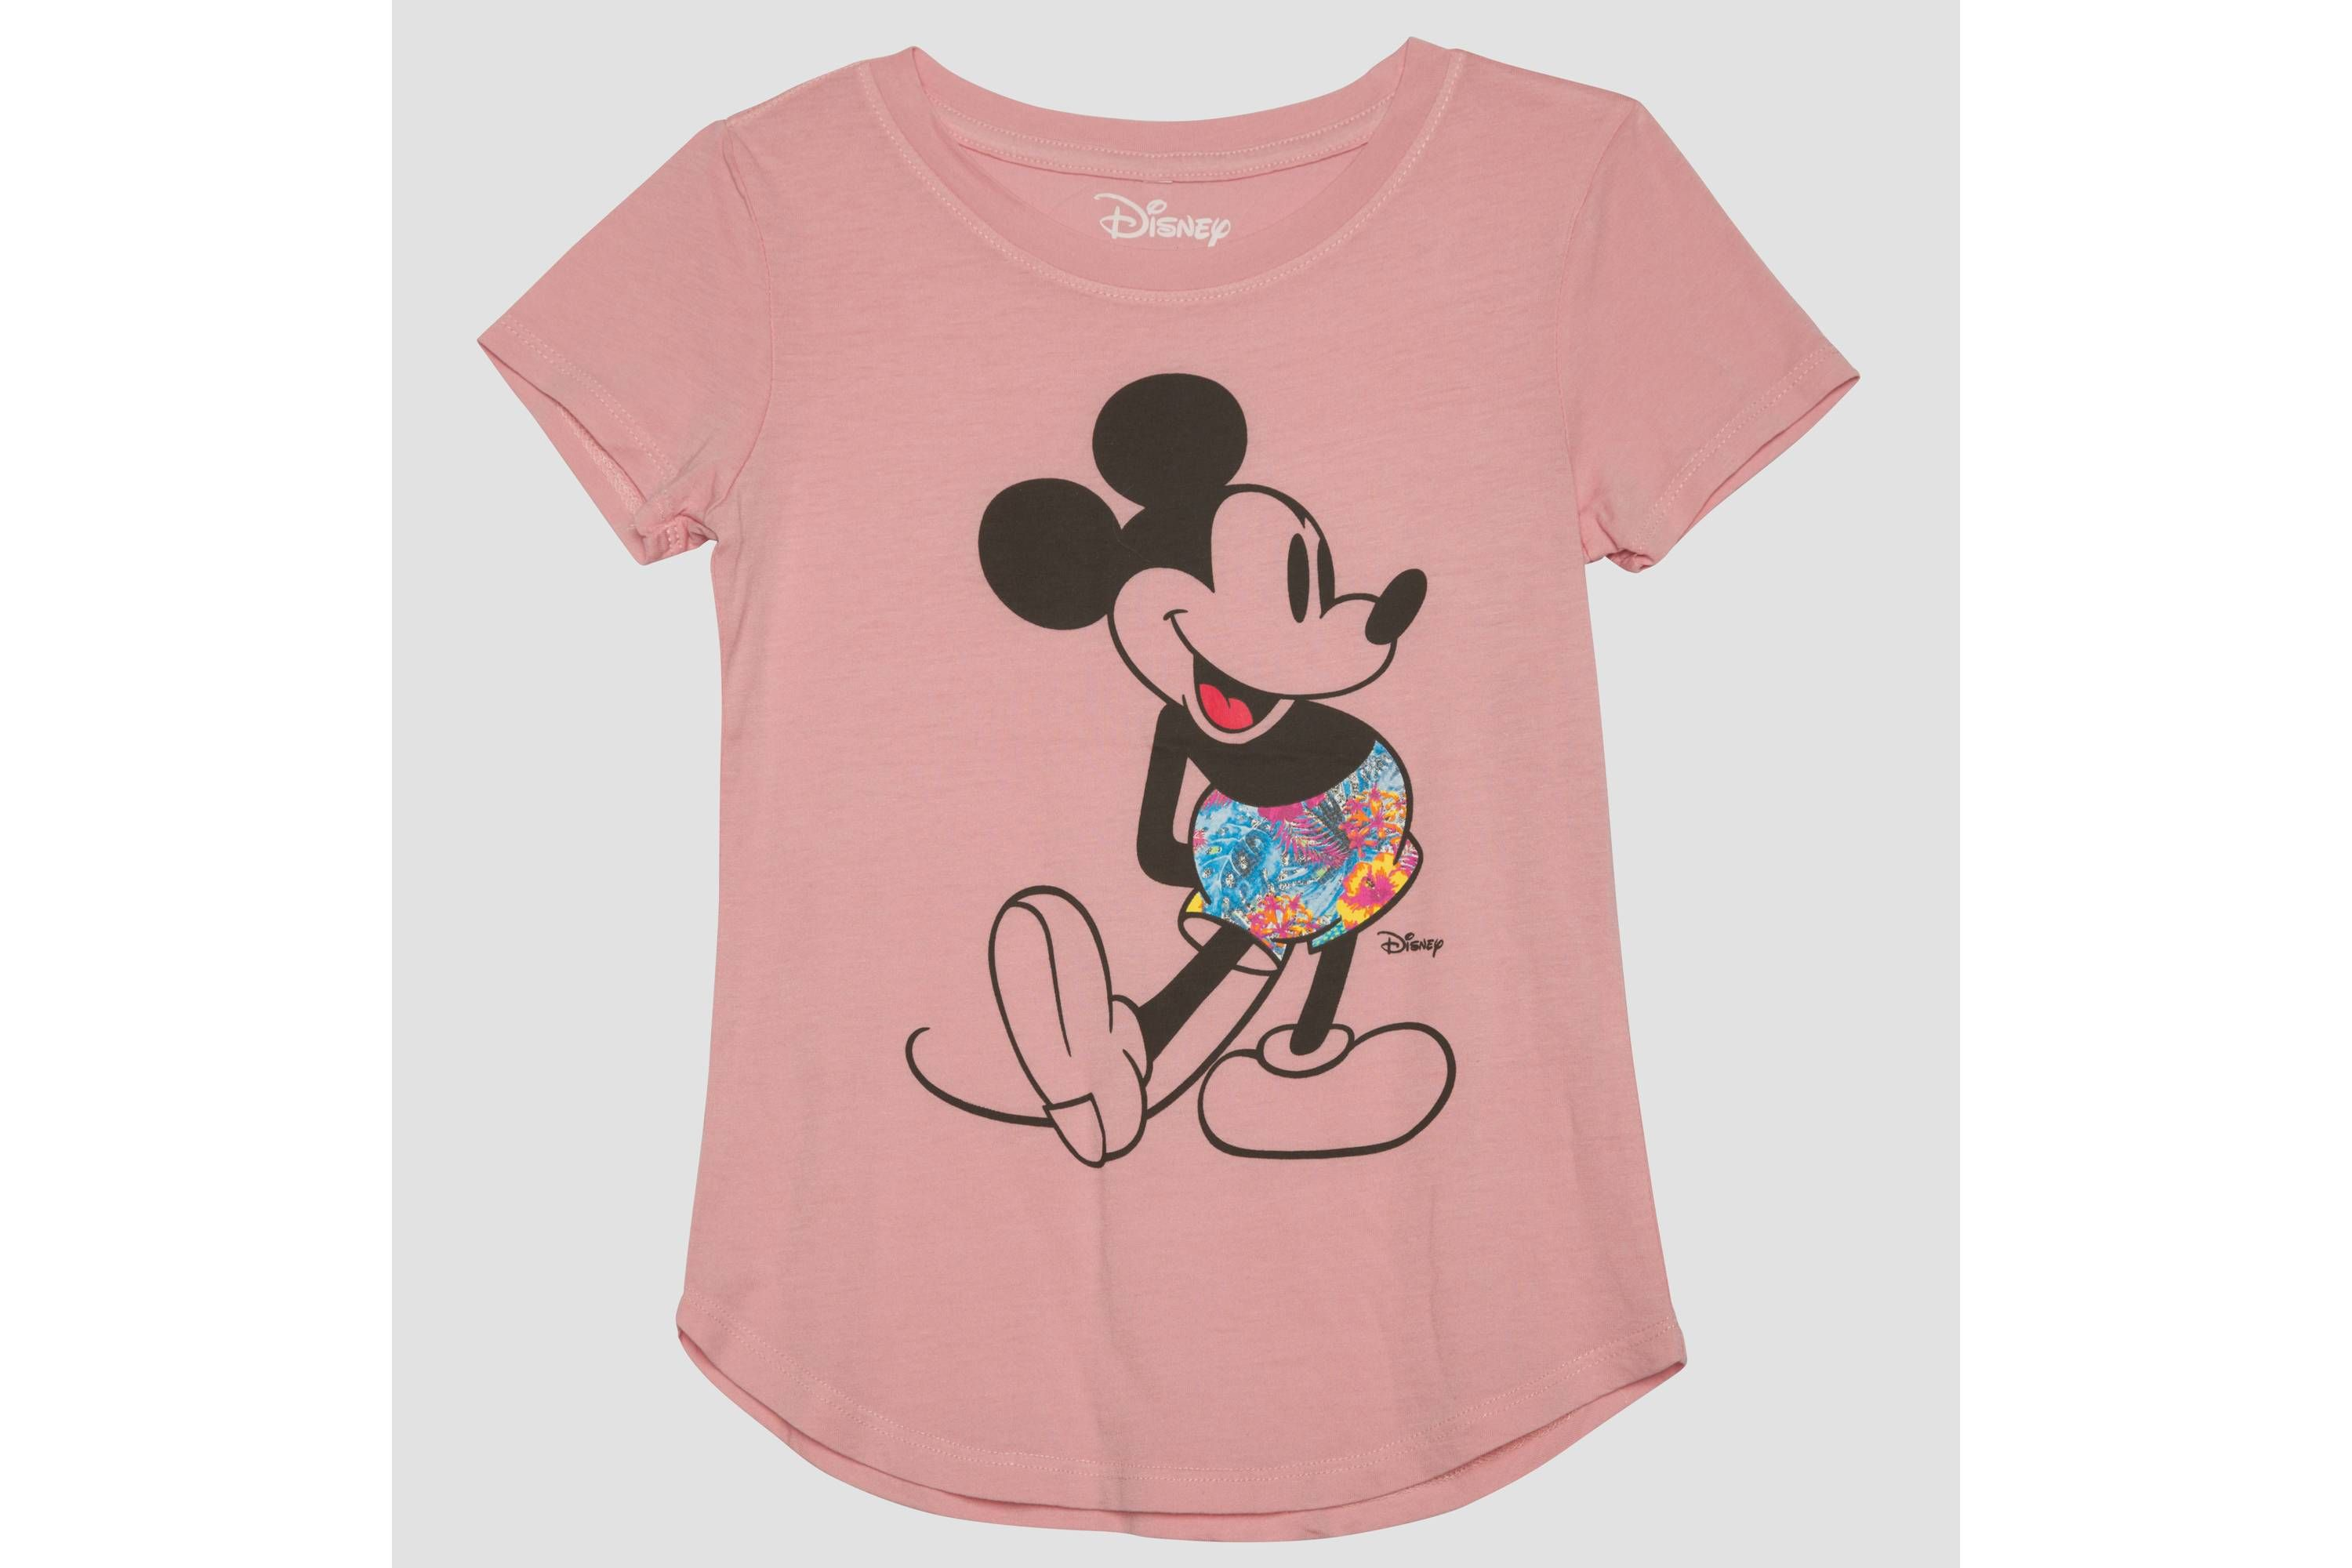 New snazzy disney tees for kids from targets art class